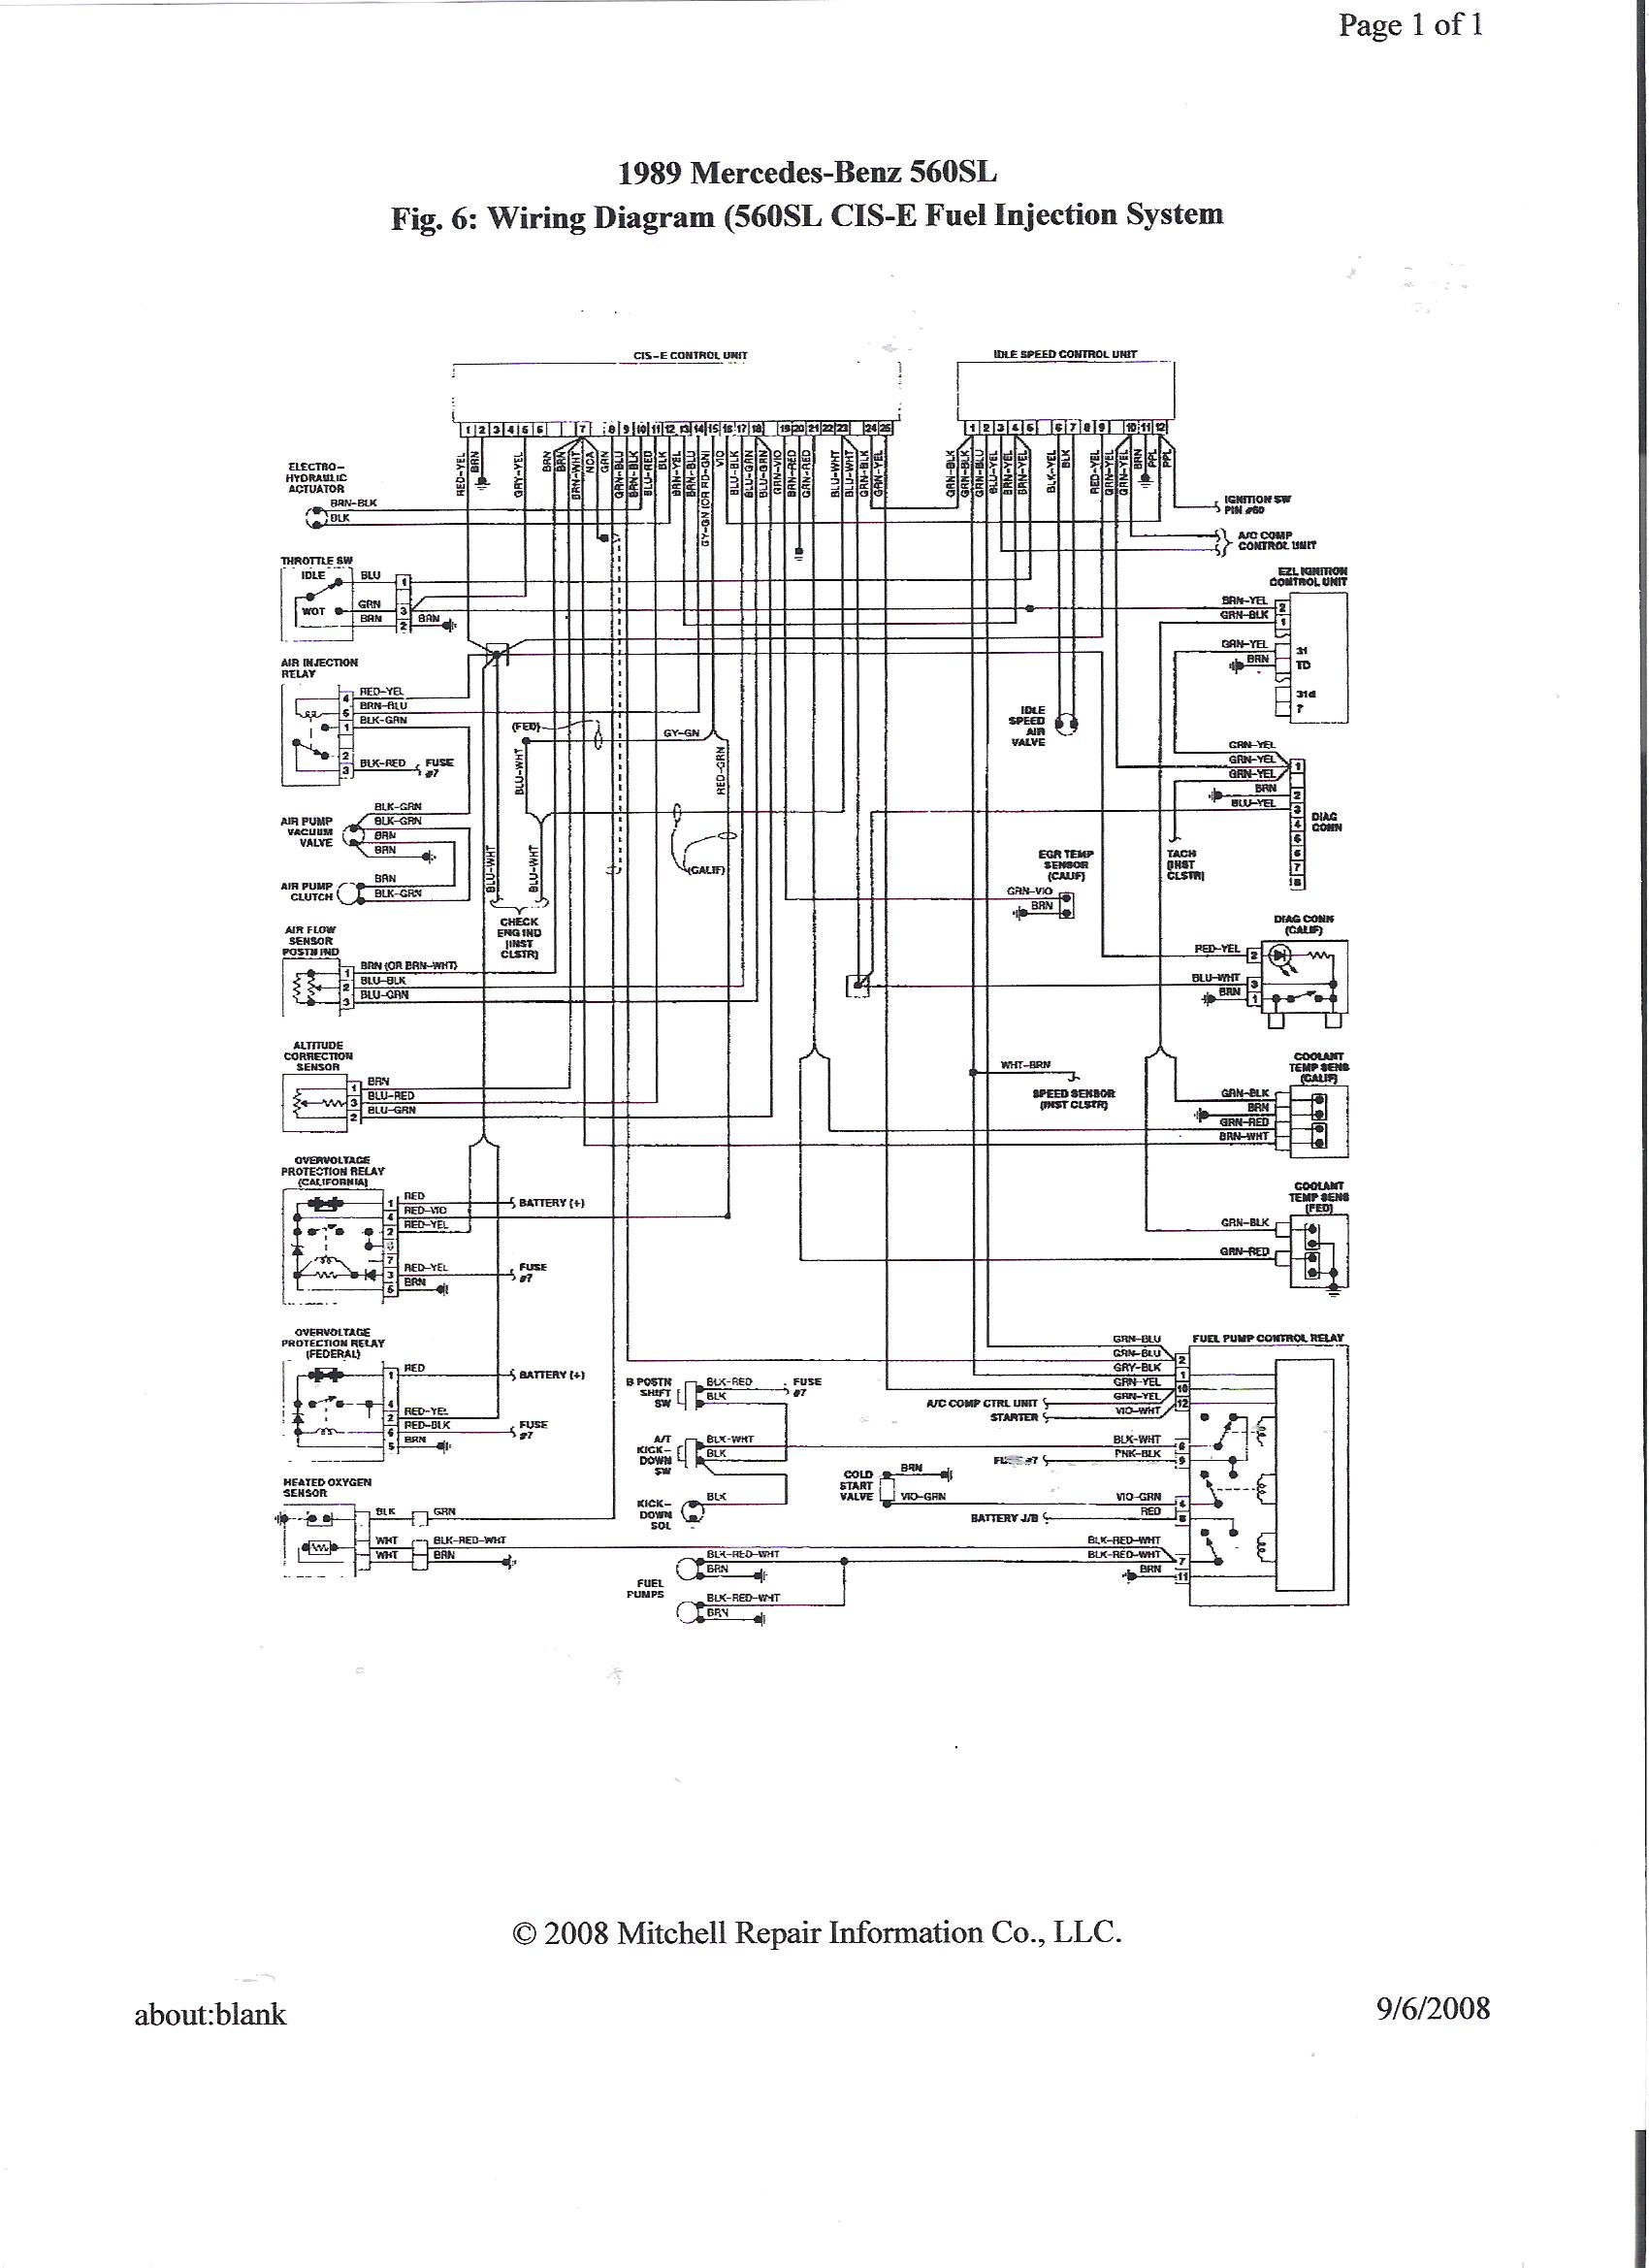 1989 560sl Mirror Switch Wiring Diagram